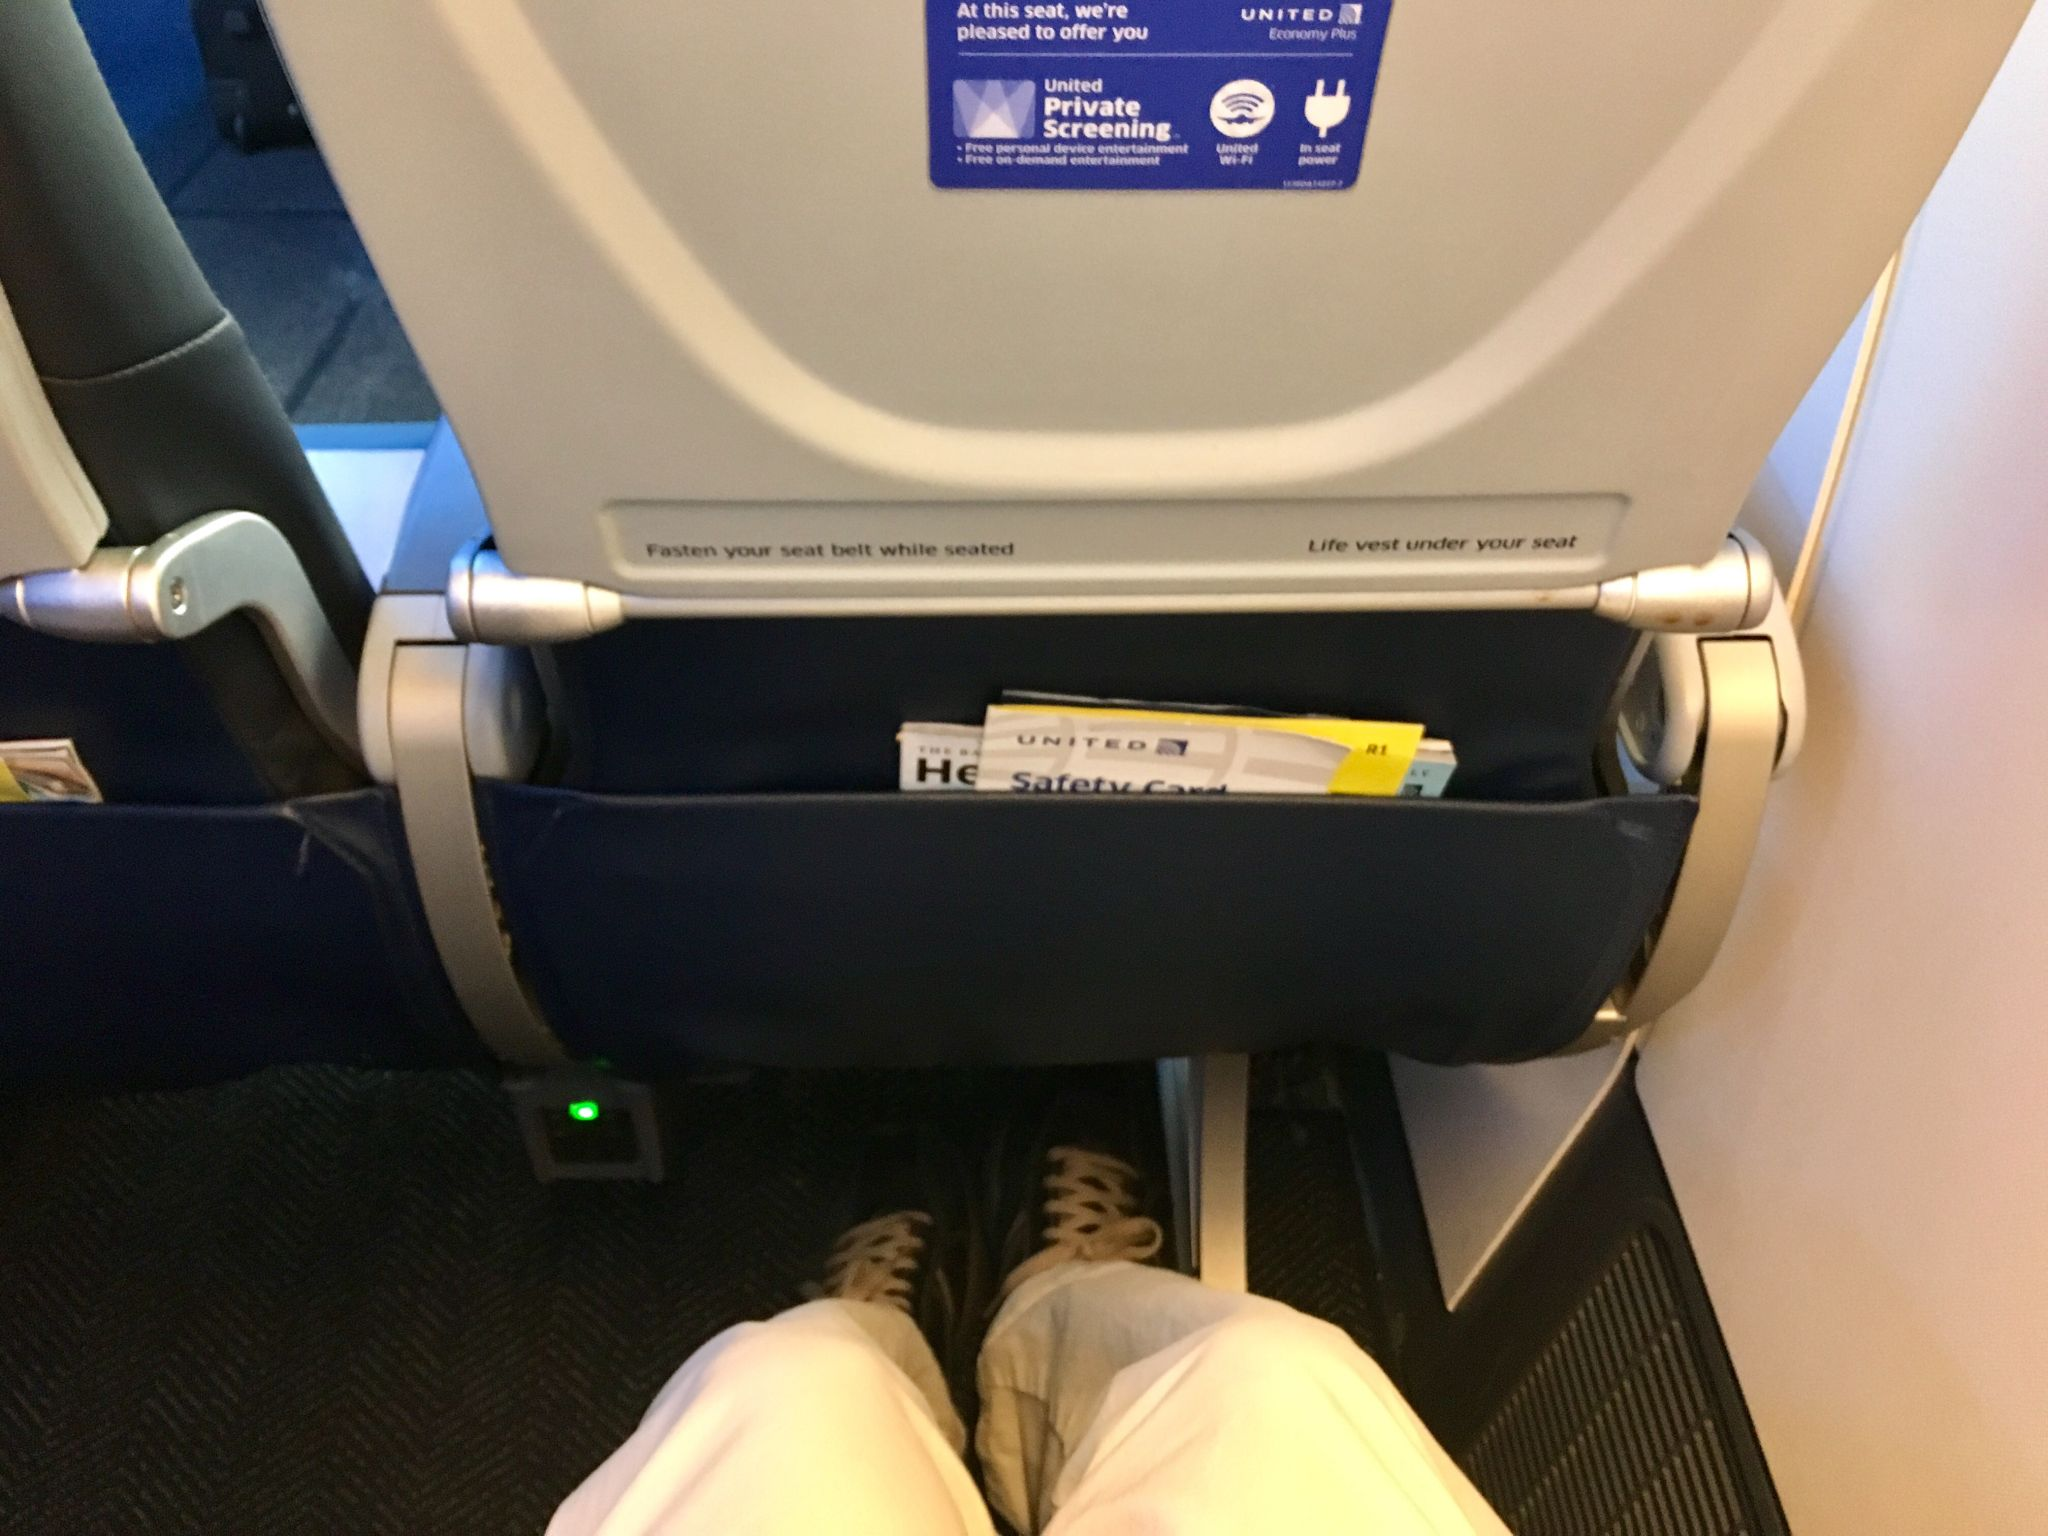 Review: Across the pond in United's shrinking economy seat